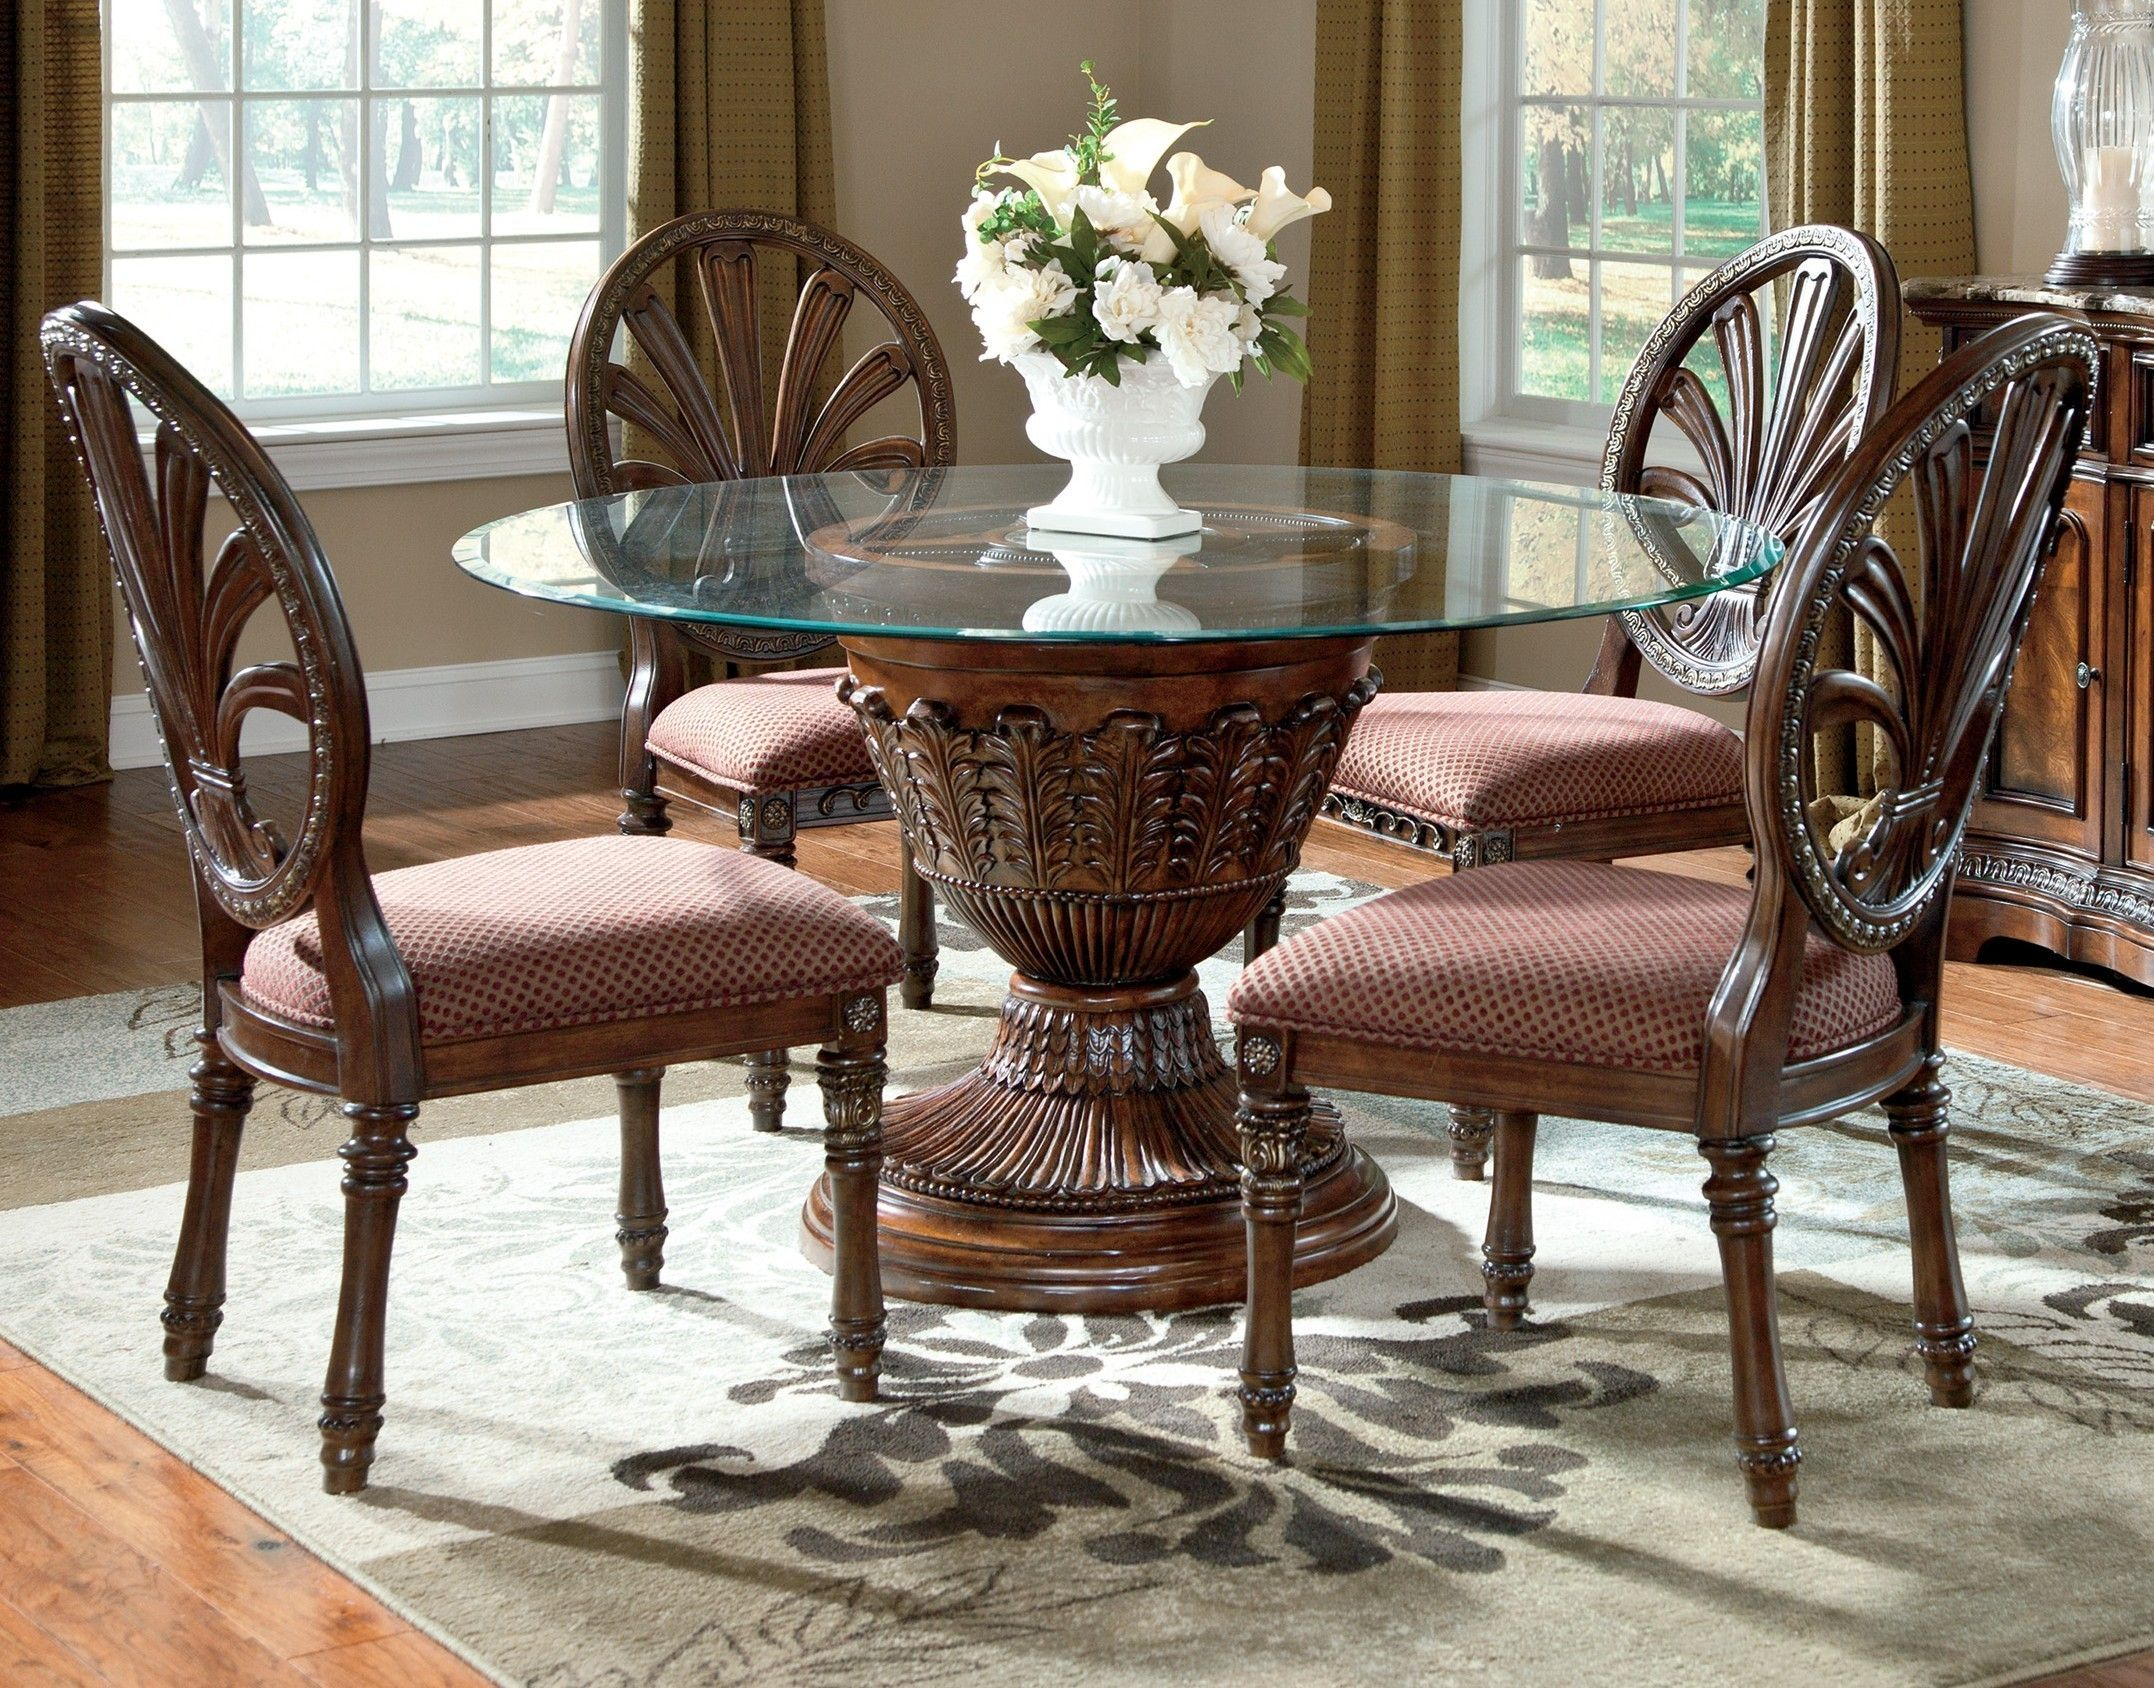 Sparky ashley dining room furniture cream color Makes Residence Warmer : dining table set ashley furniture - pezcame.com